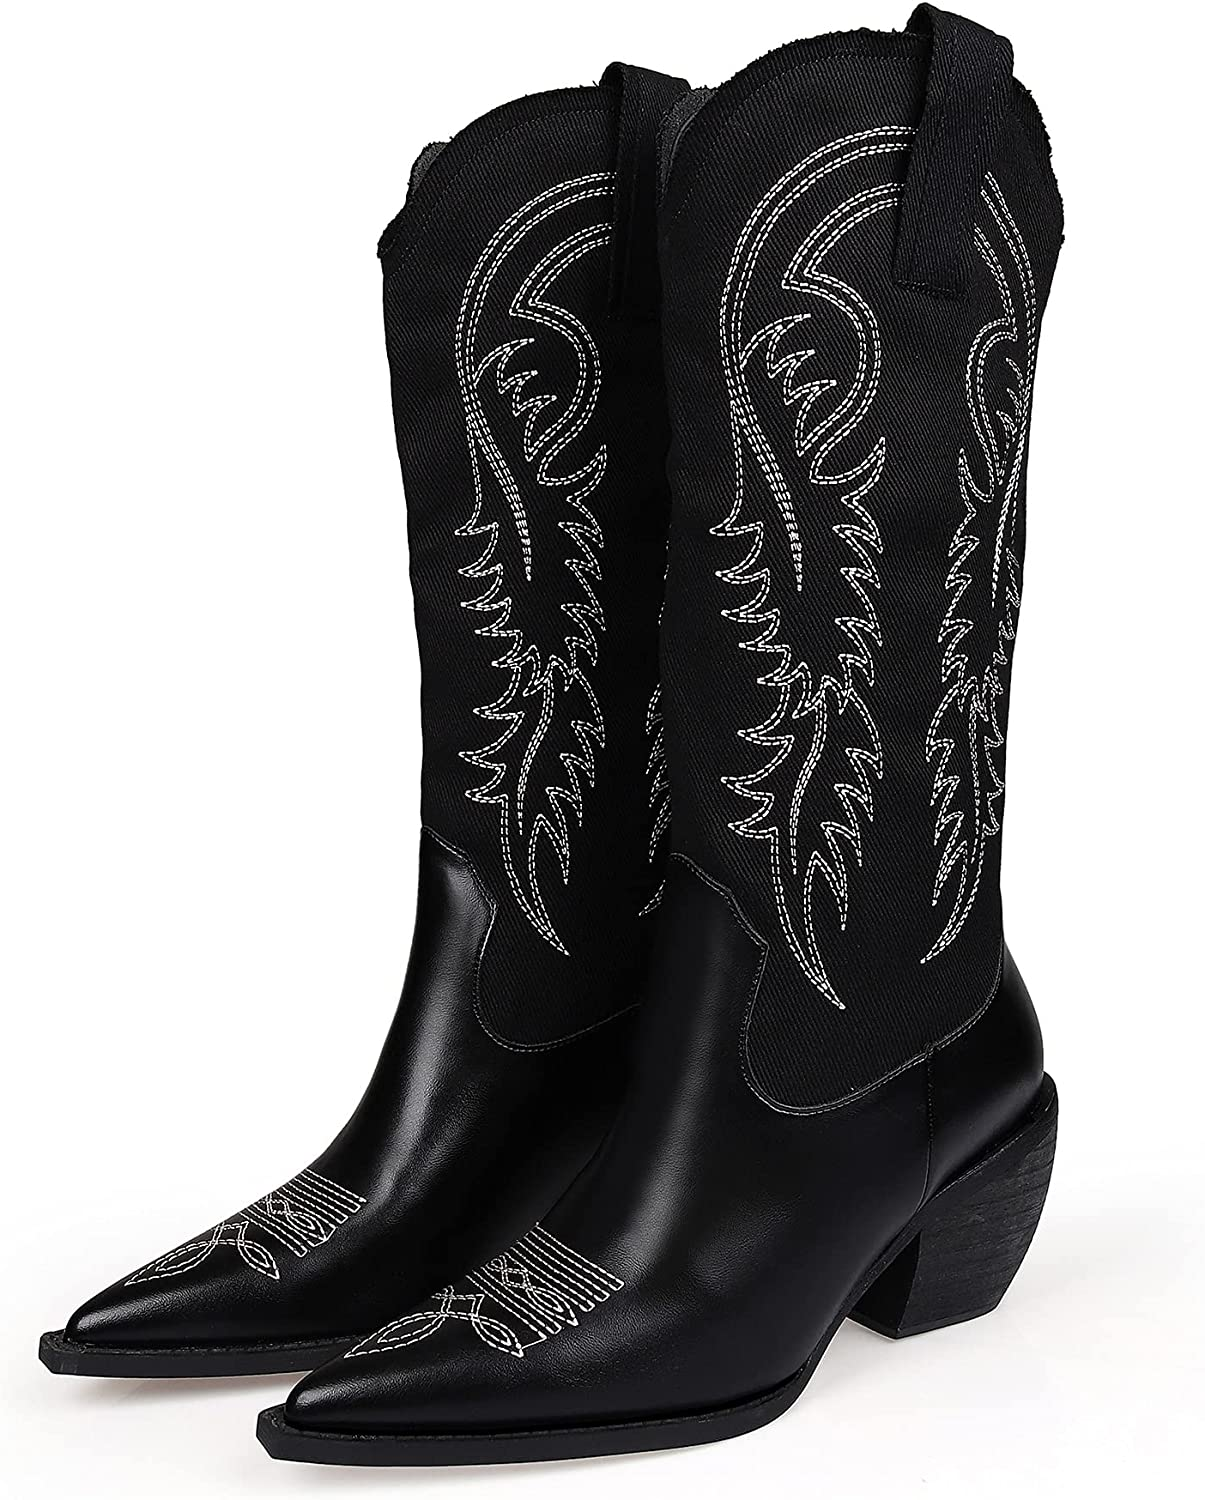 MissHeel Cowboy Boots for Women Embroidered Canvas Cowgirl Knee High Western Boots Pull-On